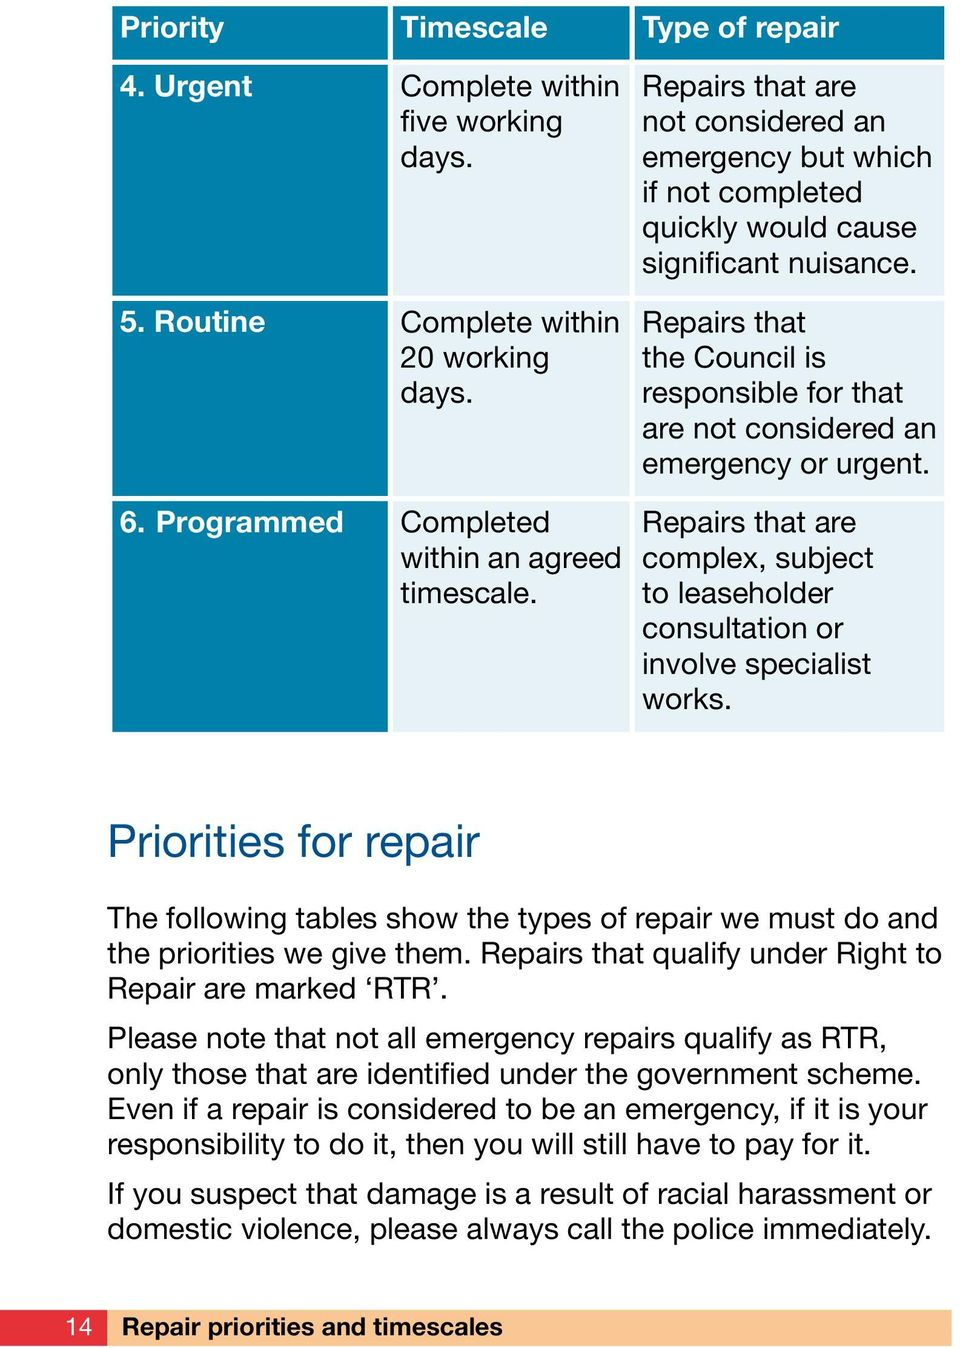 Repairs that the Council is responsible for that are not considered an emergency or urgent. Repairs that are complex, subject to leaseholder consultation or involve specialist works.